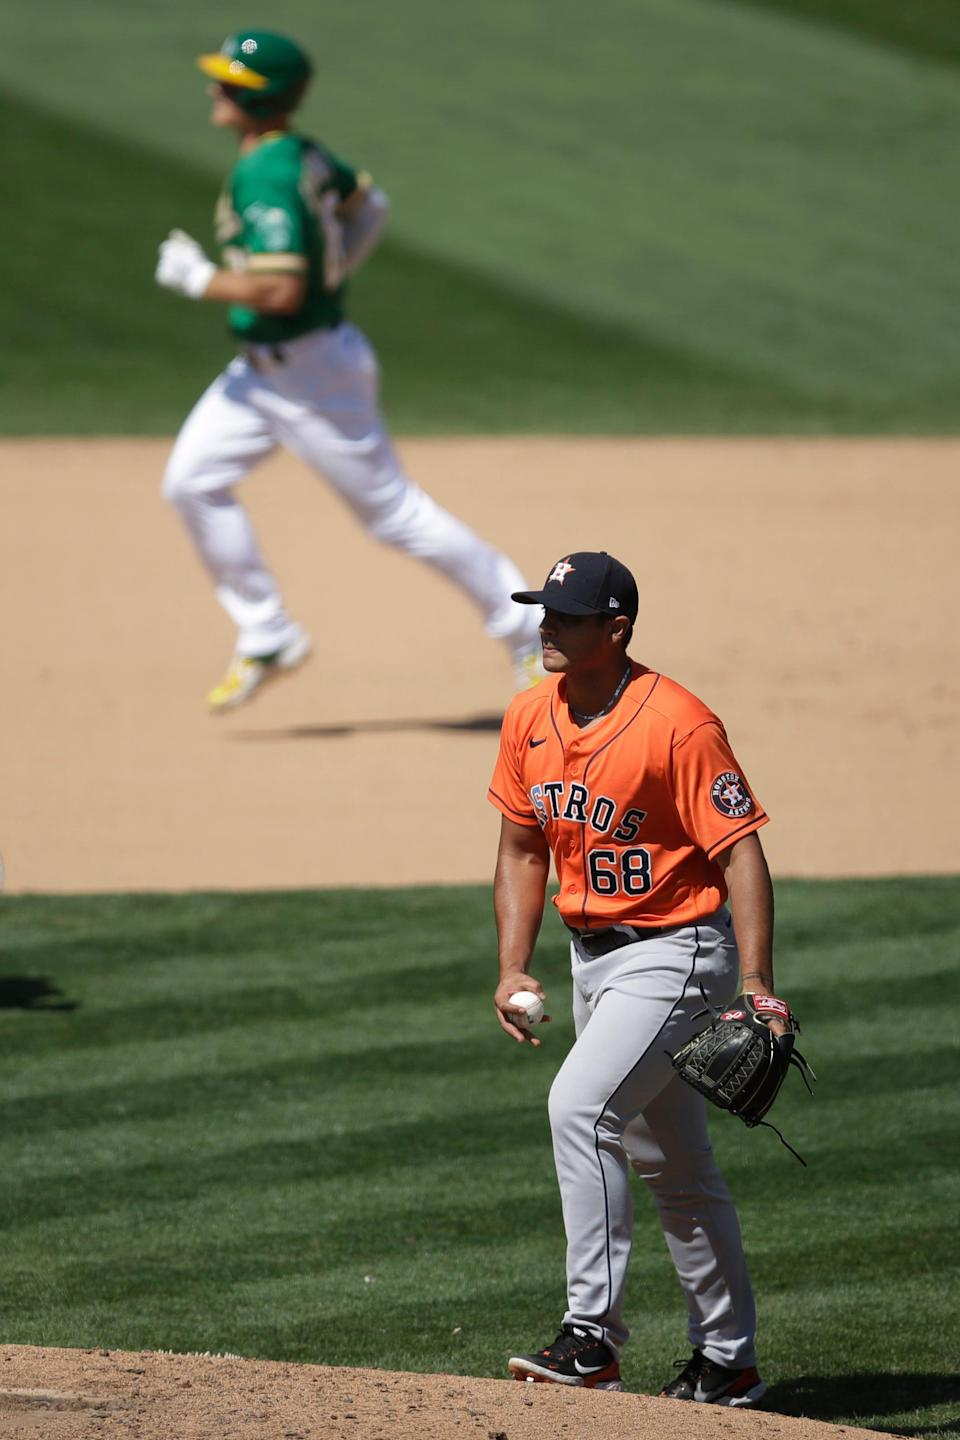 Houston Astros' Nivaldo Rodriguez (68) waits for Oakland Athletics' Matt Chapman to run the bases after hitting a home run in the eighth inning of a baseball game Saturday, Aug. 8, 2020, in Oakland, Calif. (AP Photo/Ben Margot)